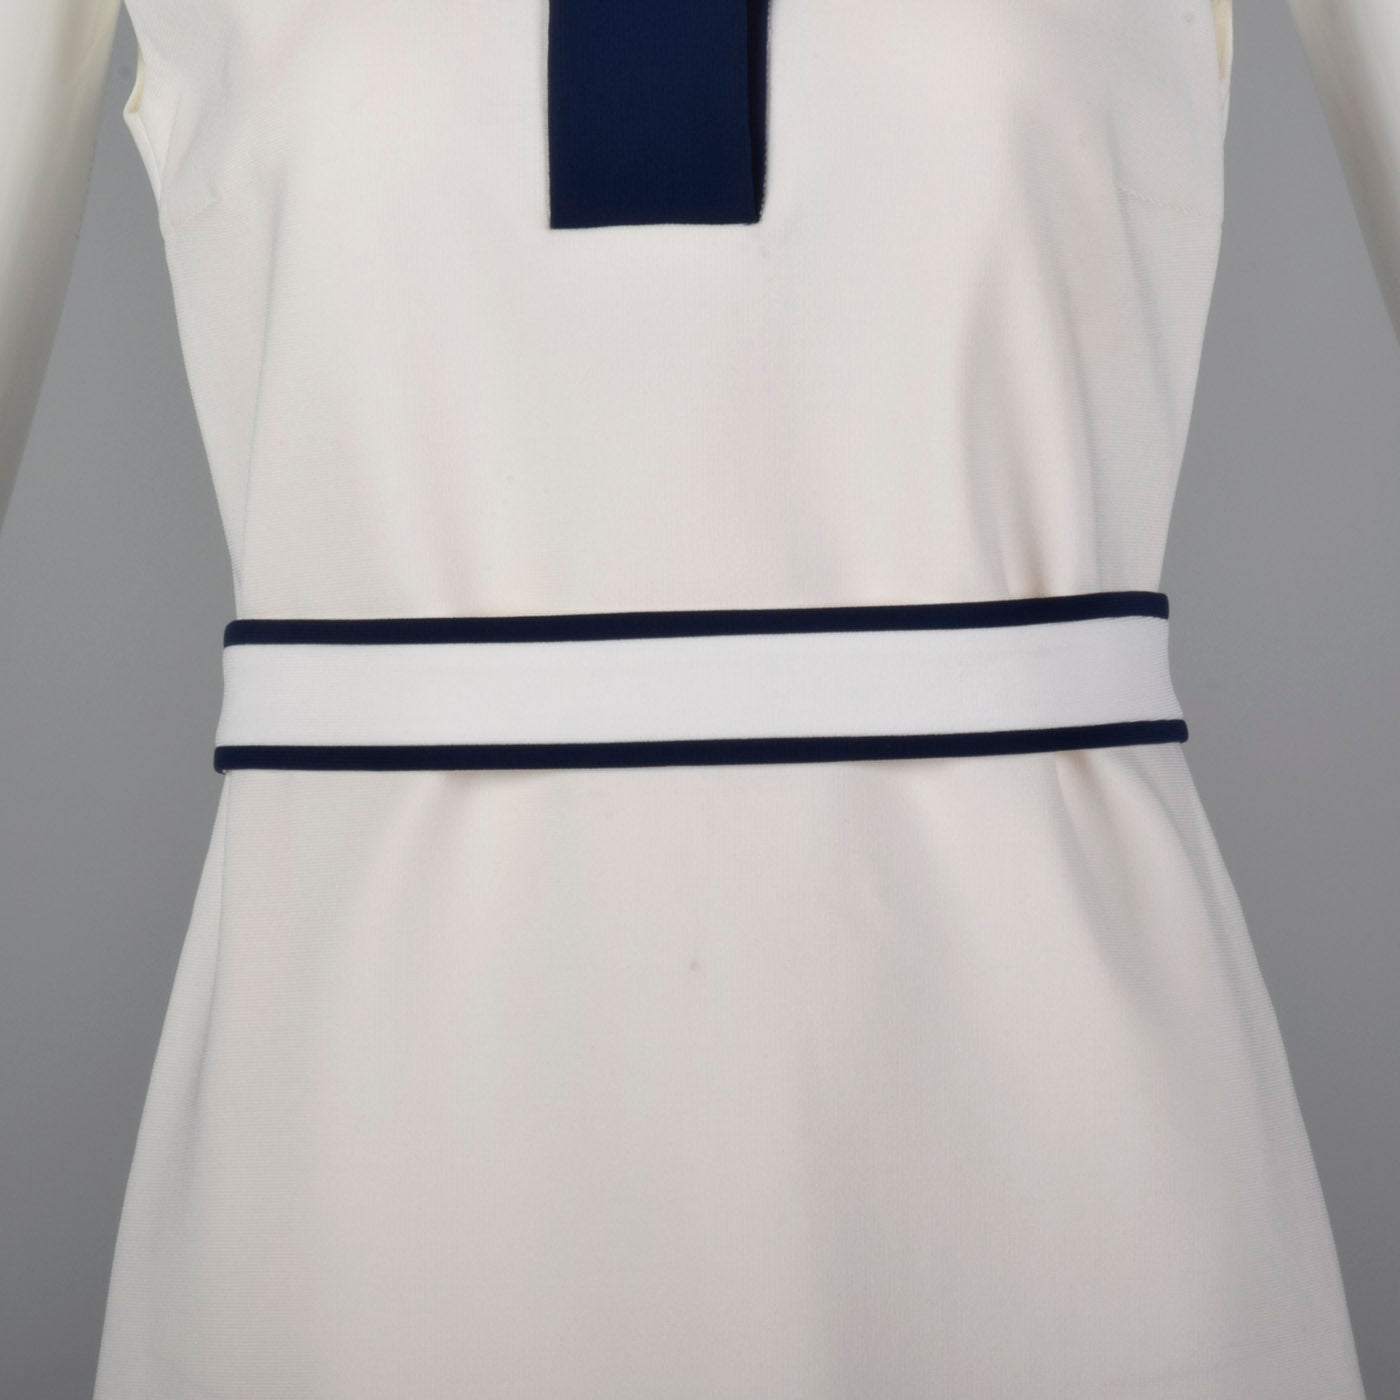 Deadstock Prada White Shift Dress with Navy Trim